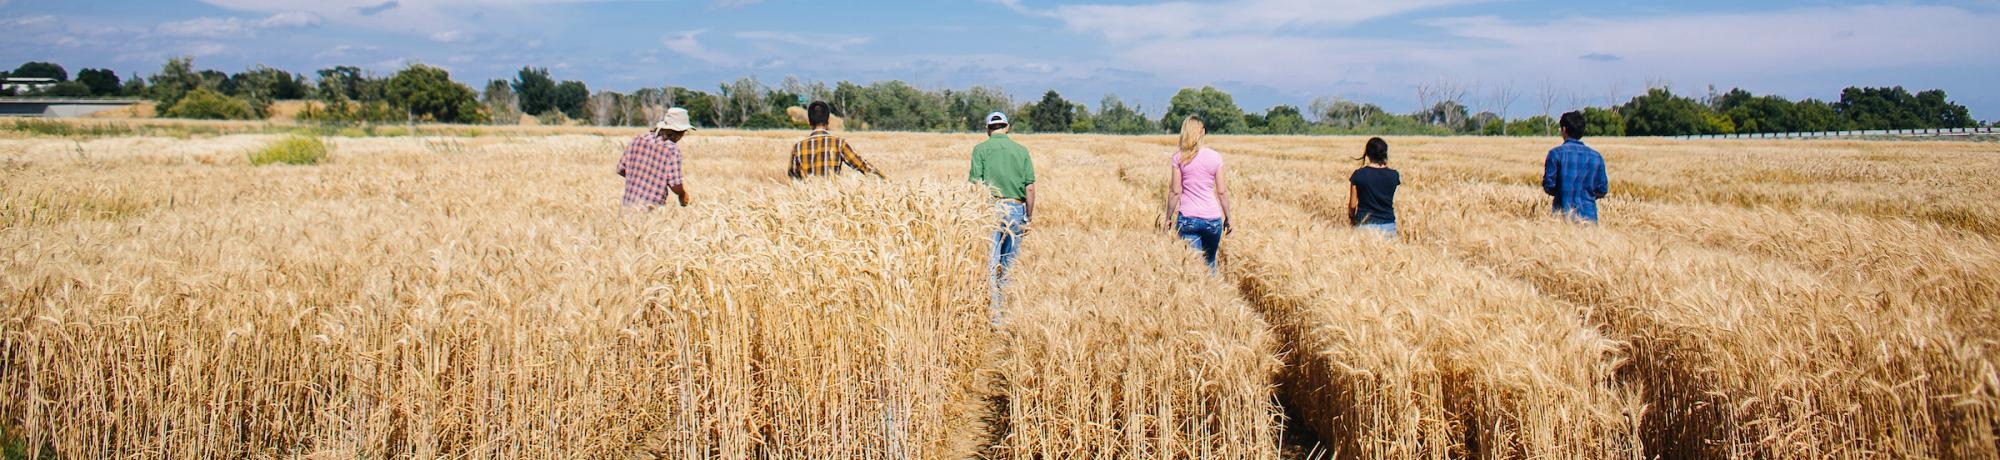 people walking in wheat field